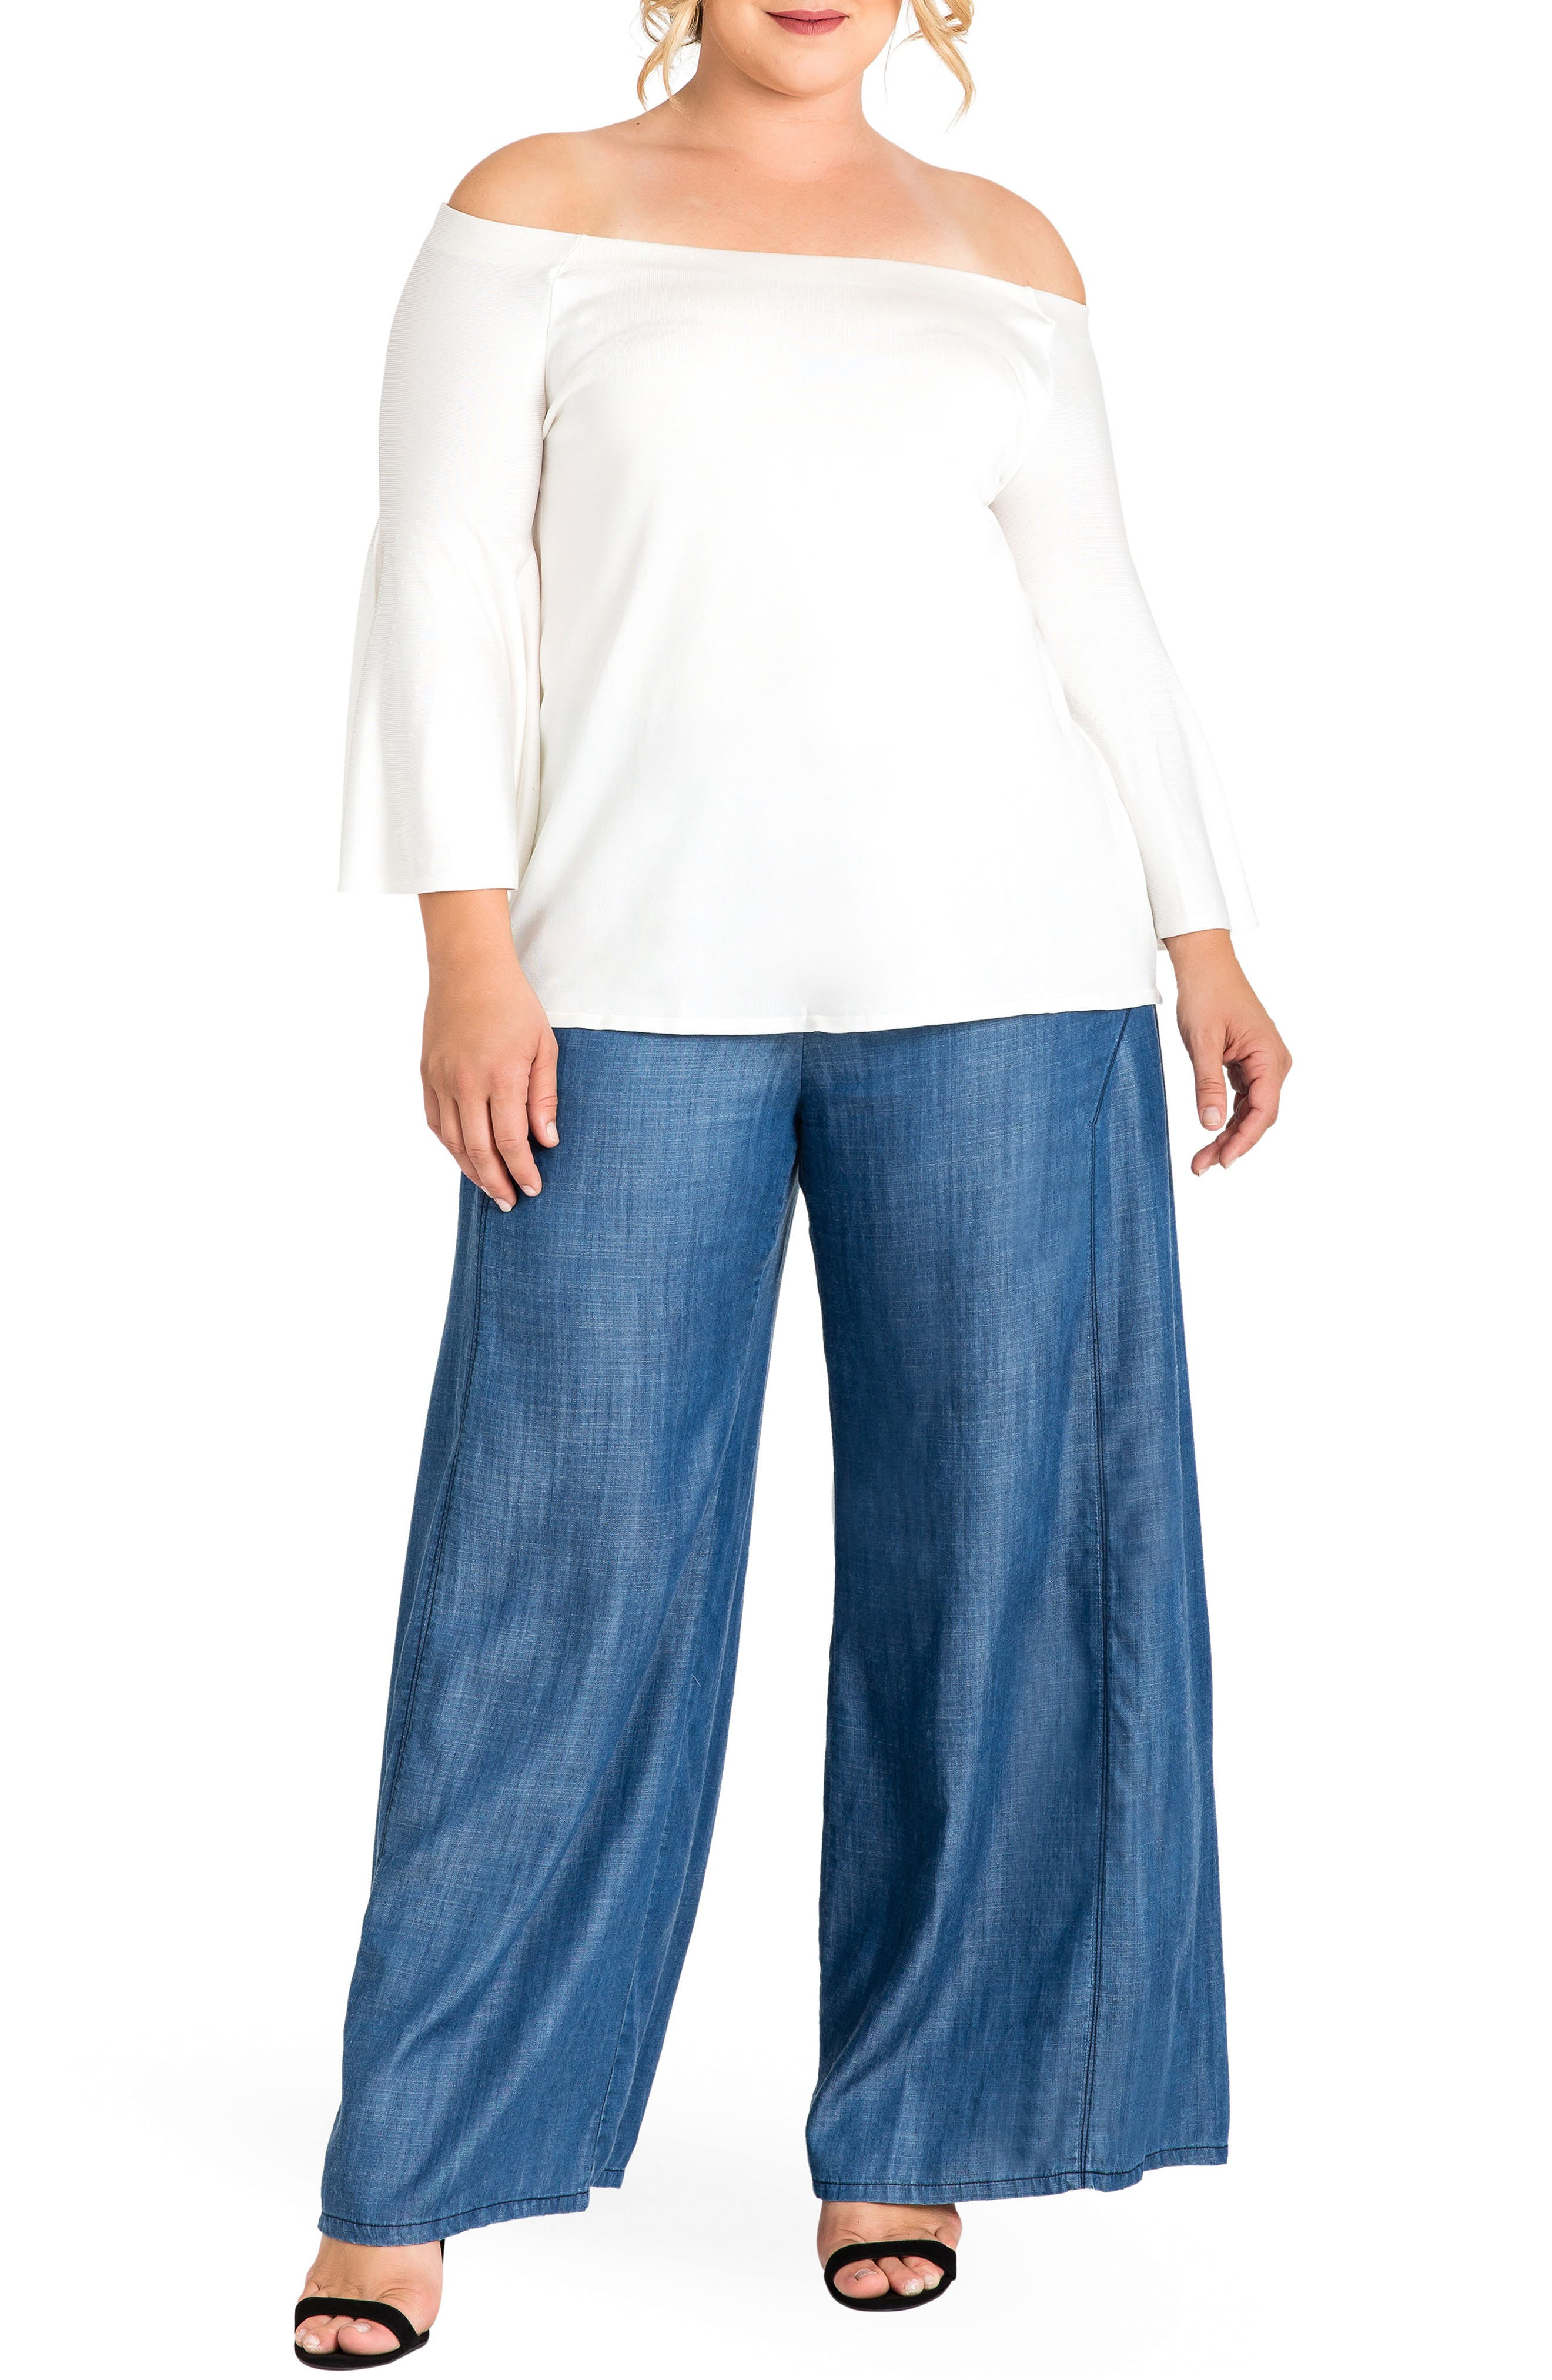 STANDARDS & PRACTICES,                             Perry Tencel<sup>®</sup> Denim Palazzo Pants,                             Alternate thumbnail 4, color,                             ALMOST RINSED